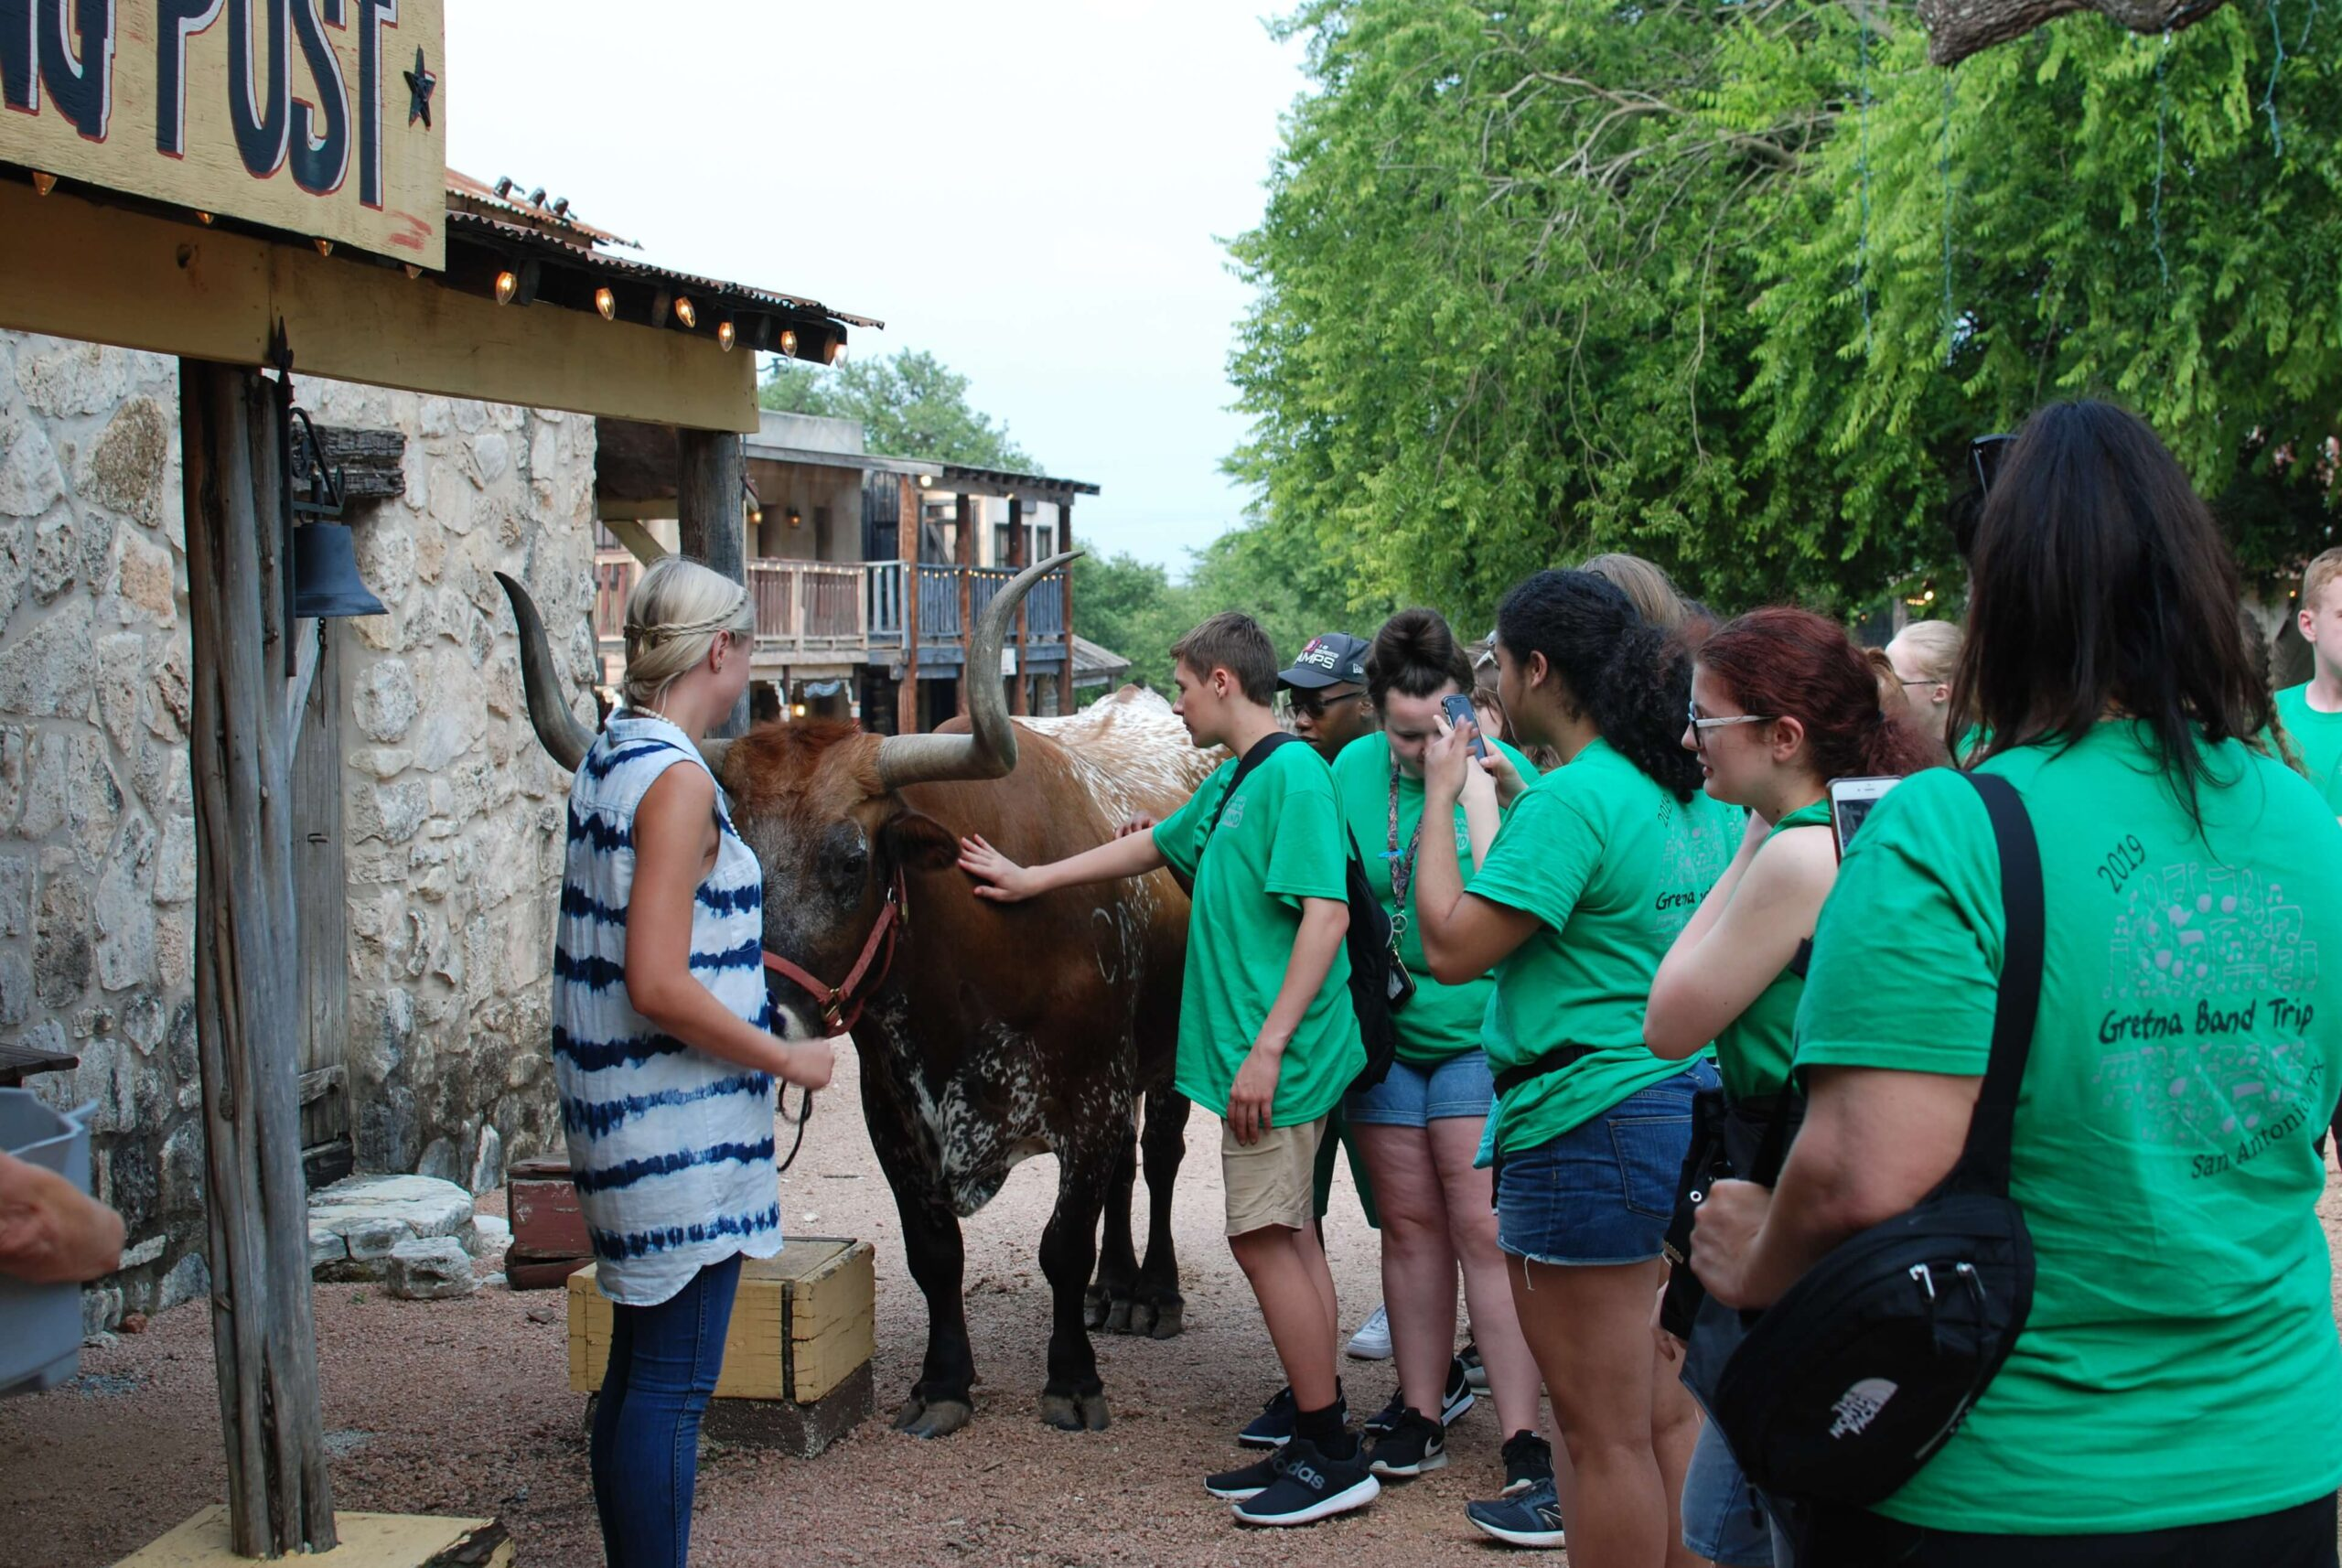 Meet and Greet with Woodrow the Texas Longhorn